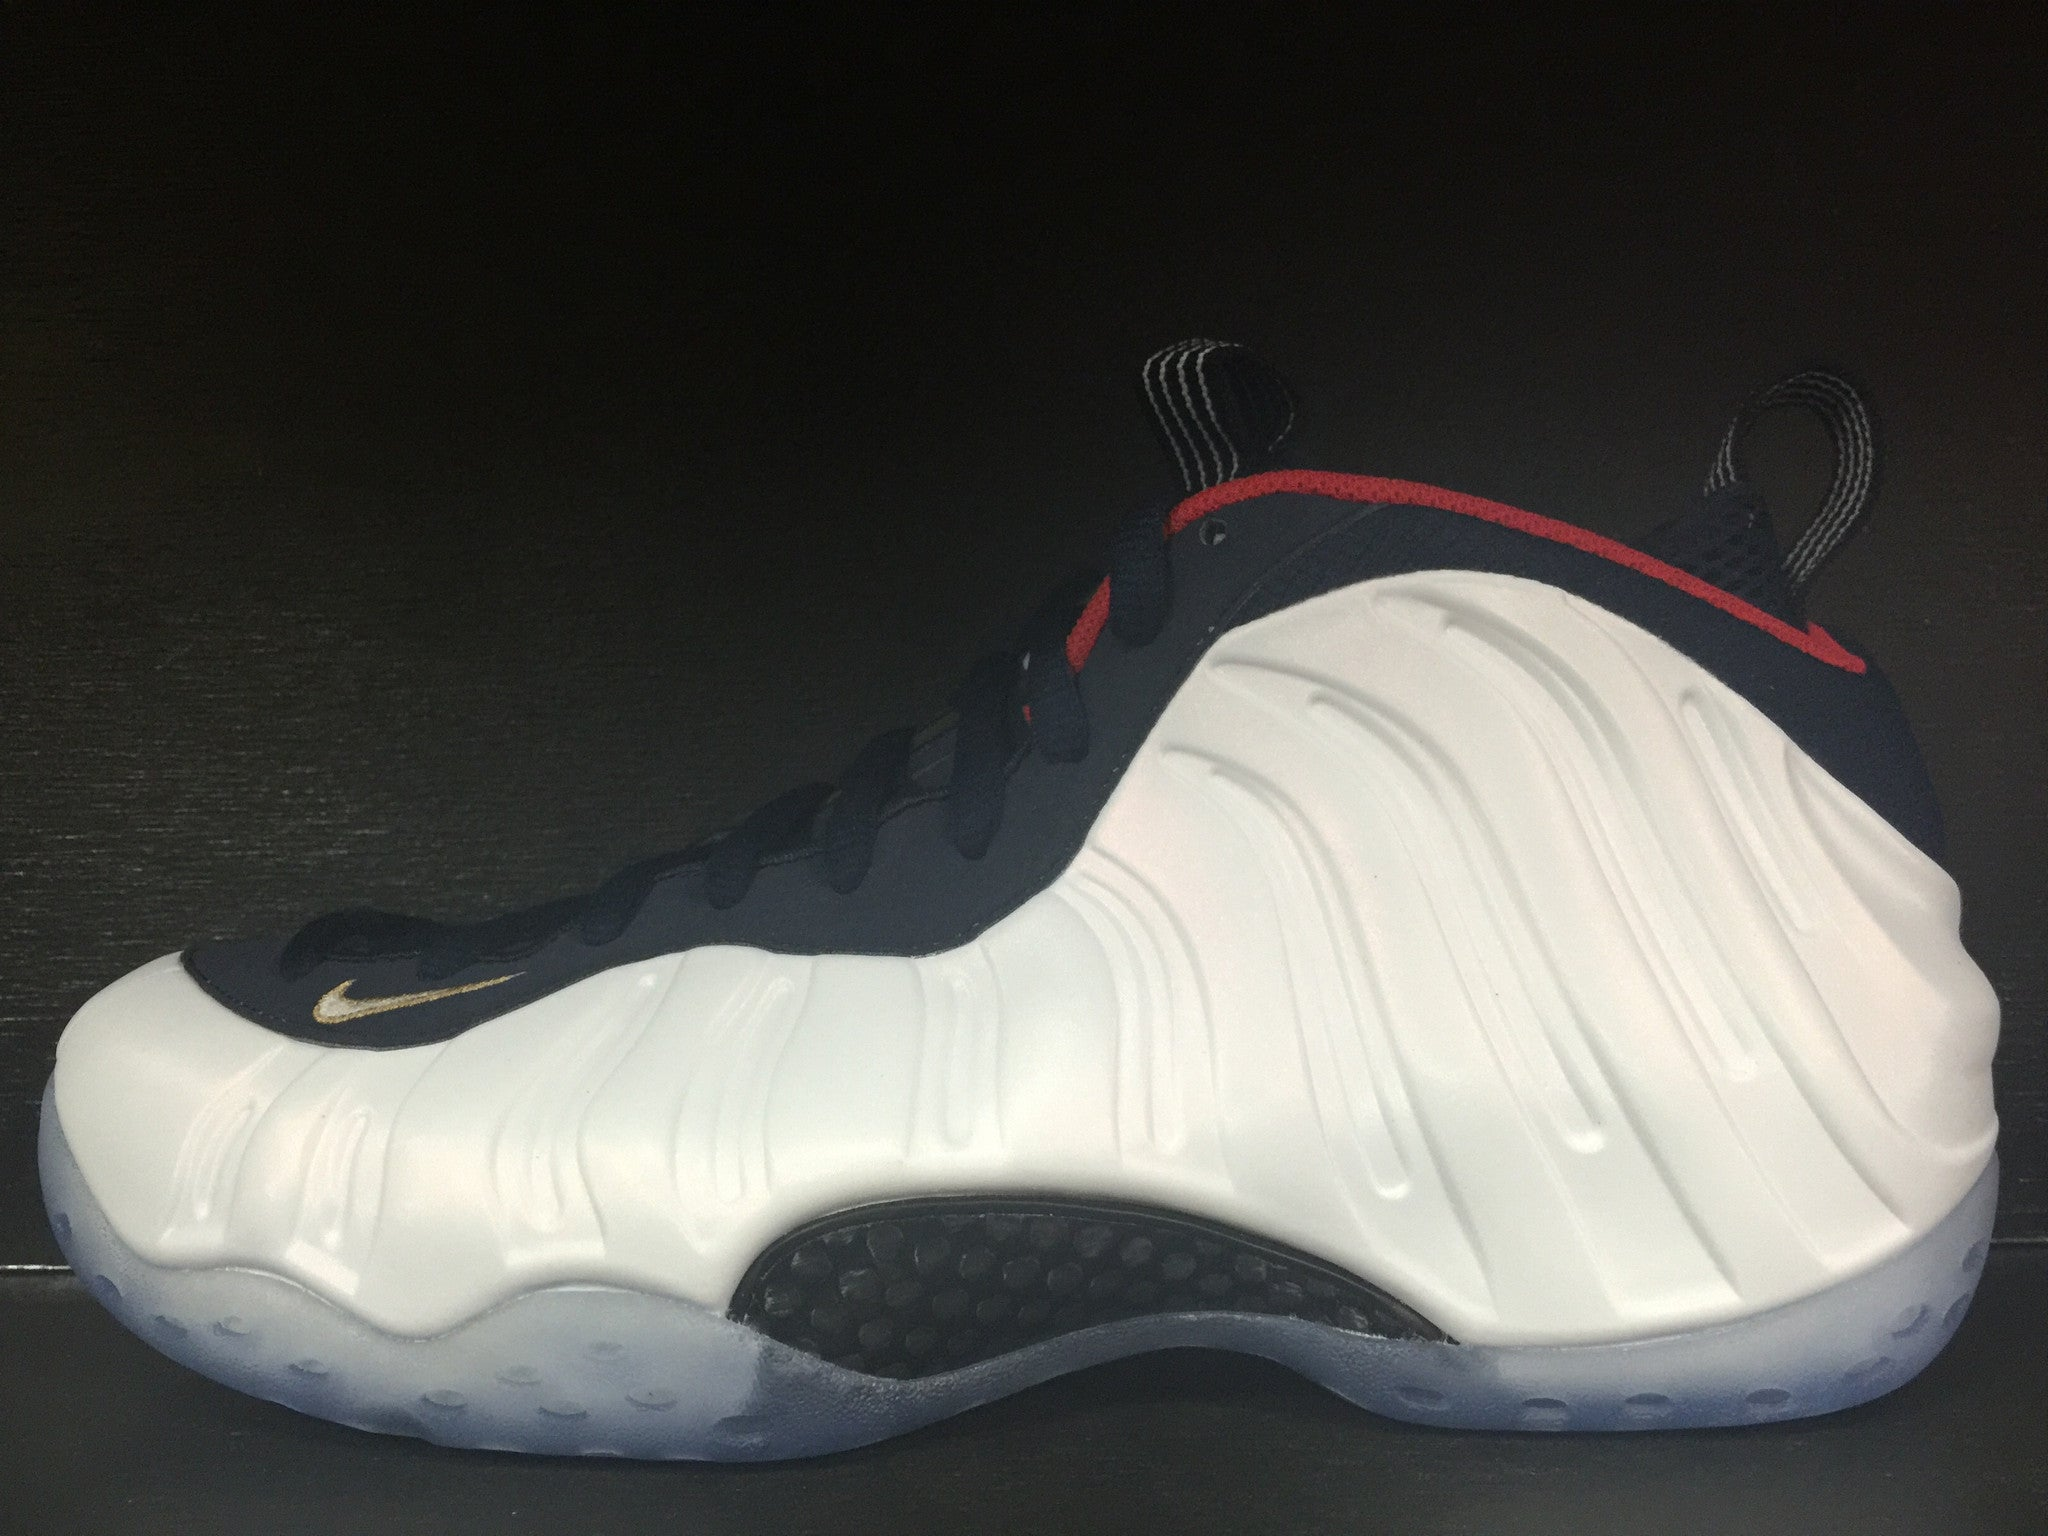 Nike Air Foamposite One 'Olympic'